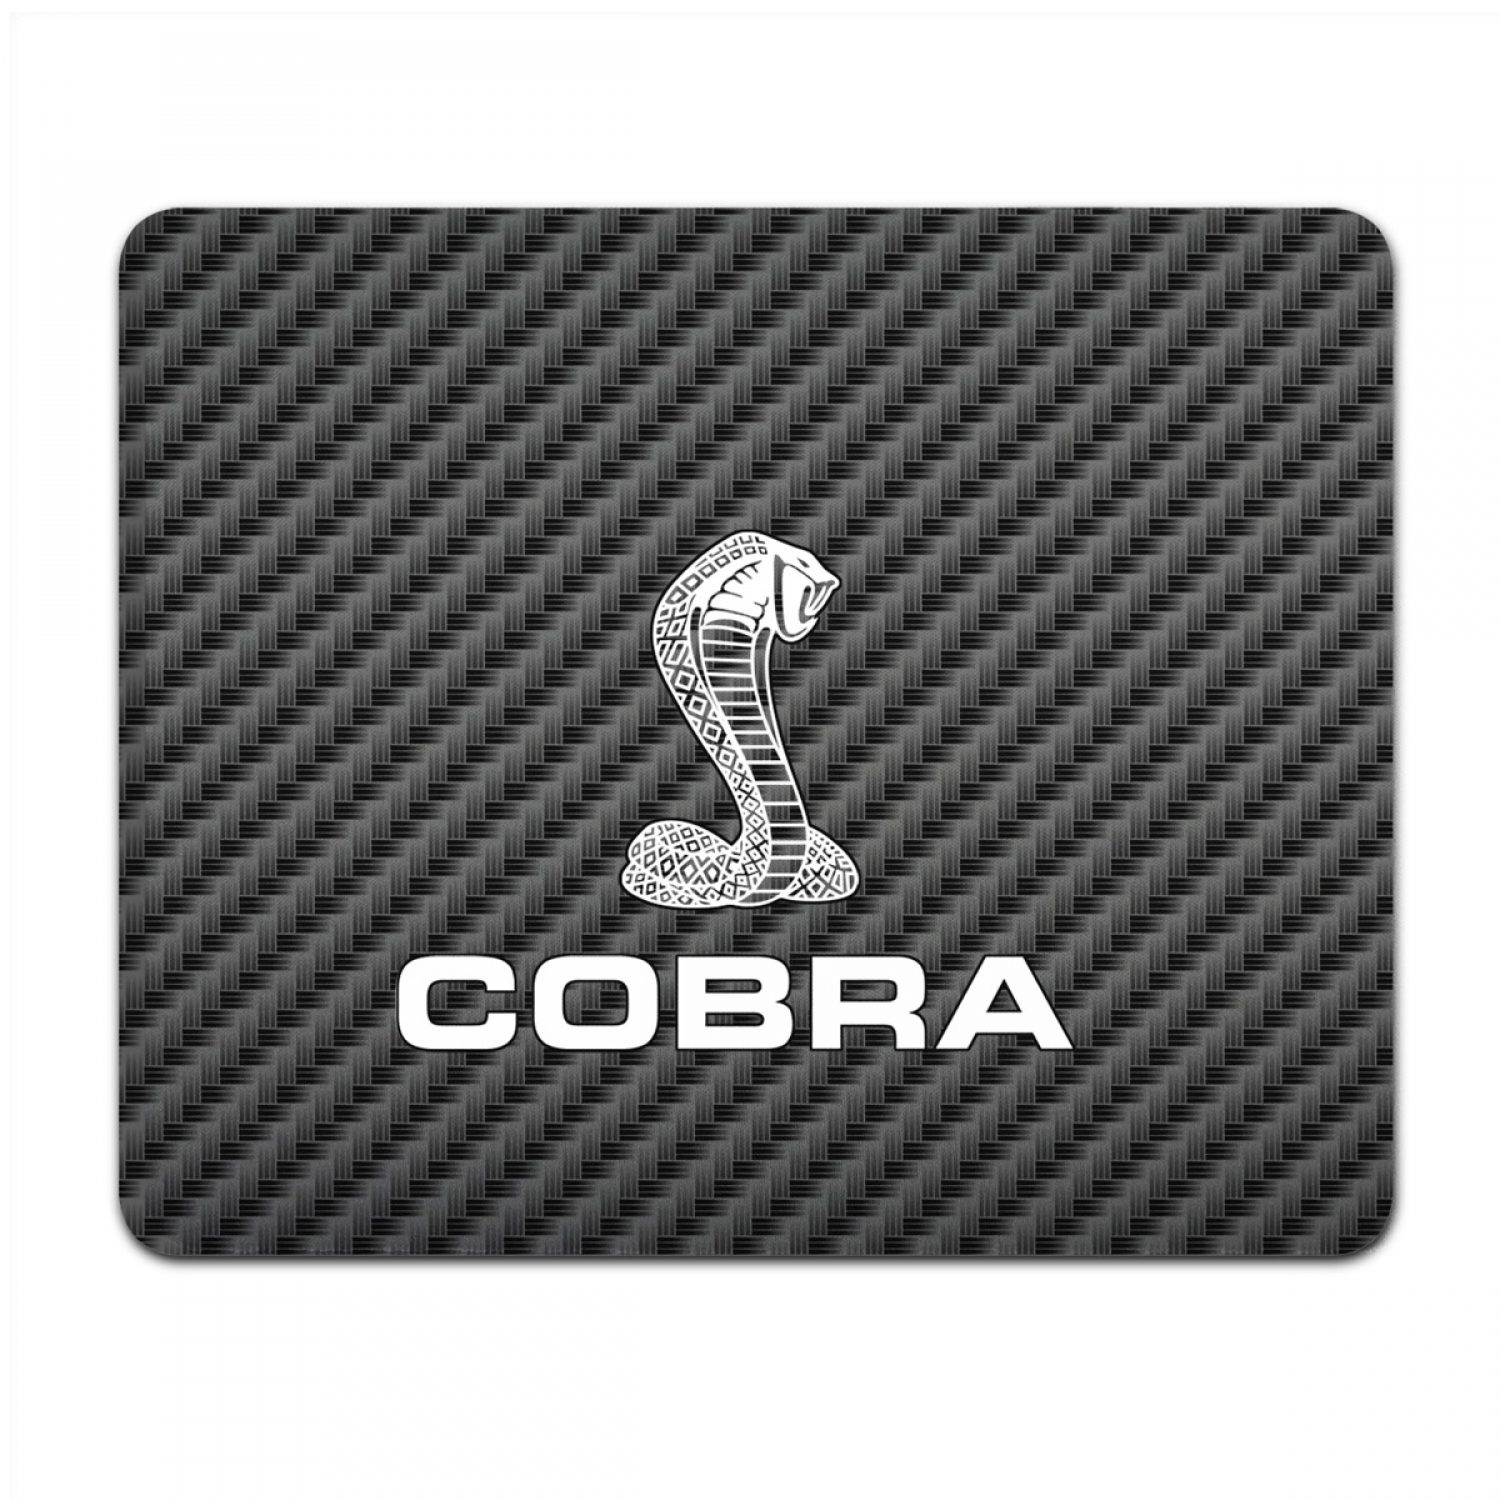 Ford Mustang Cobra Black Carbon Fiber Texture Graphic PC Mouse Pad